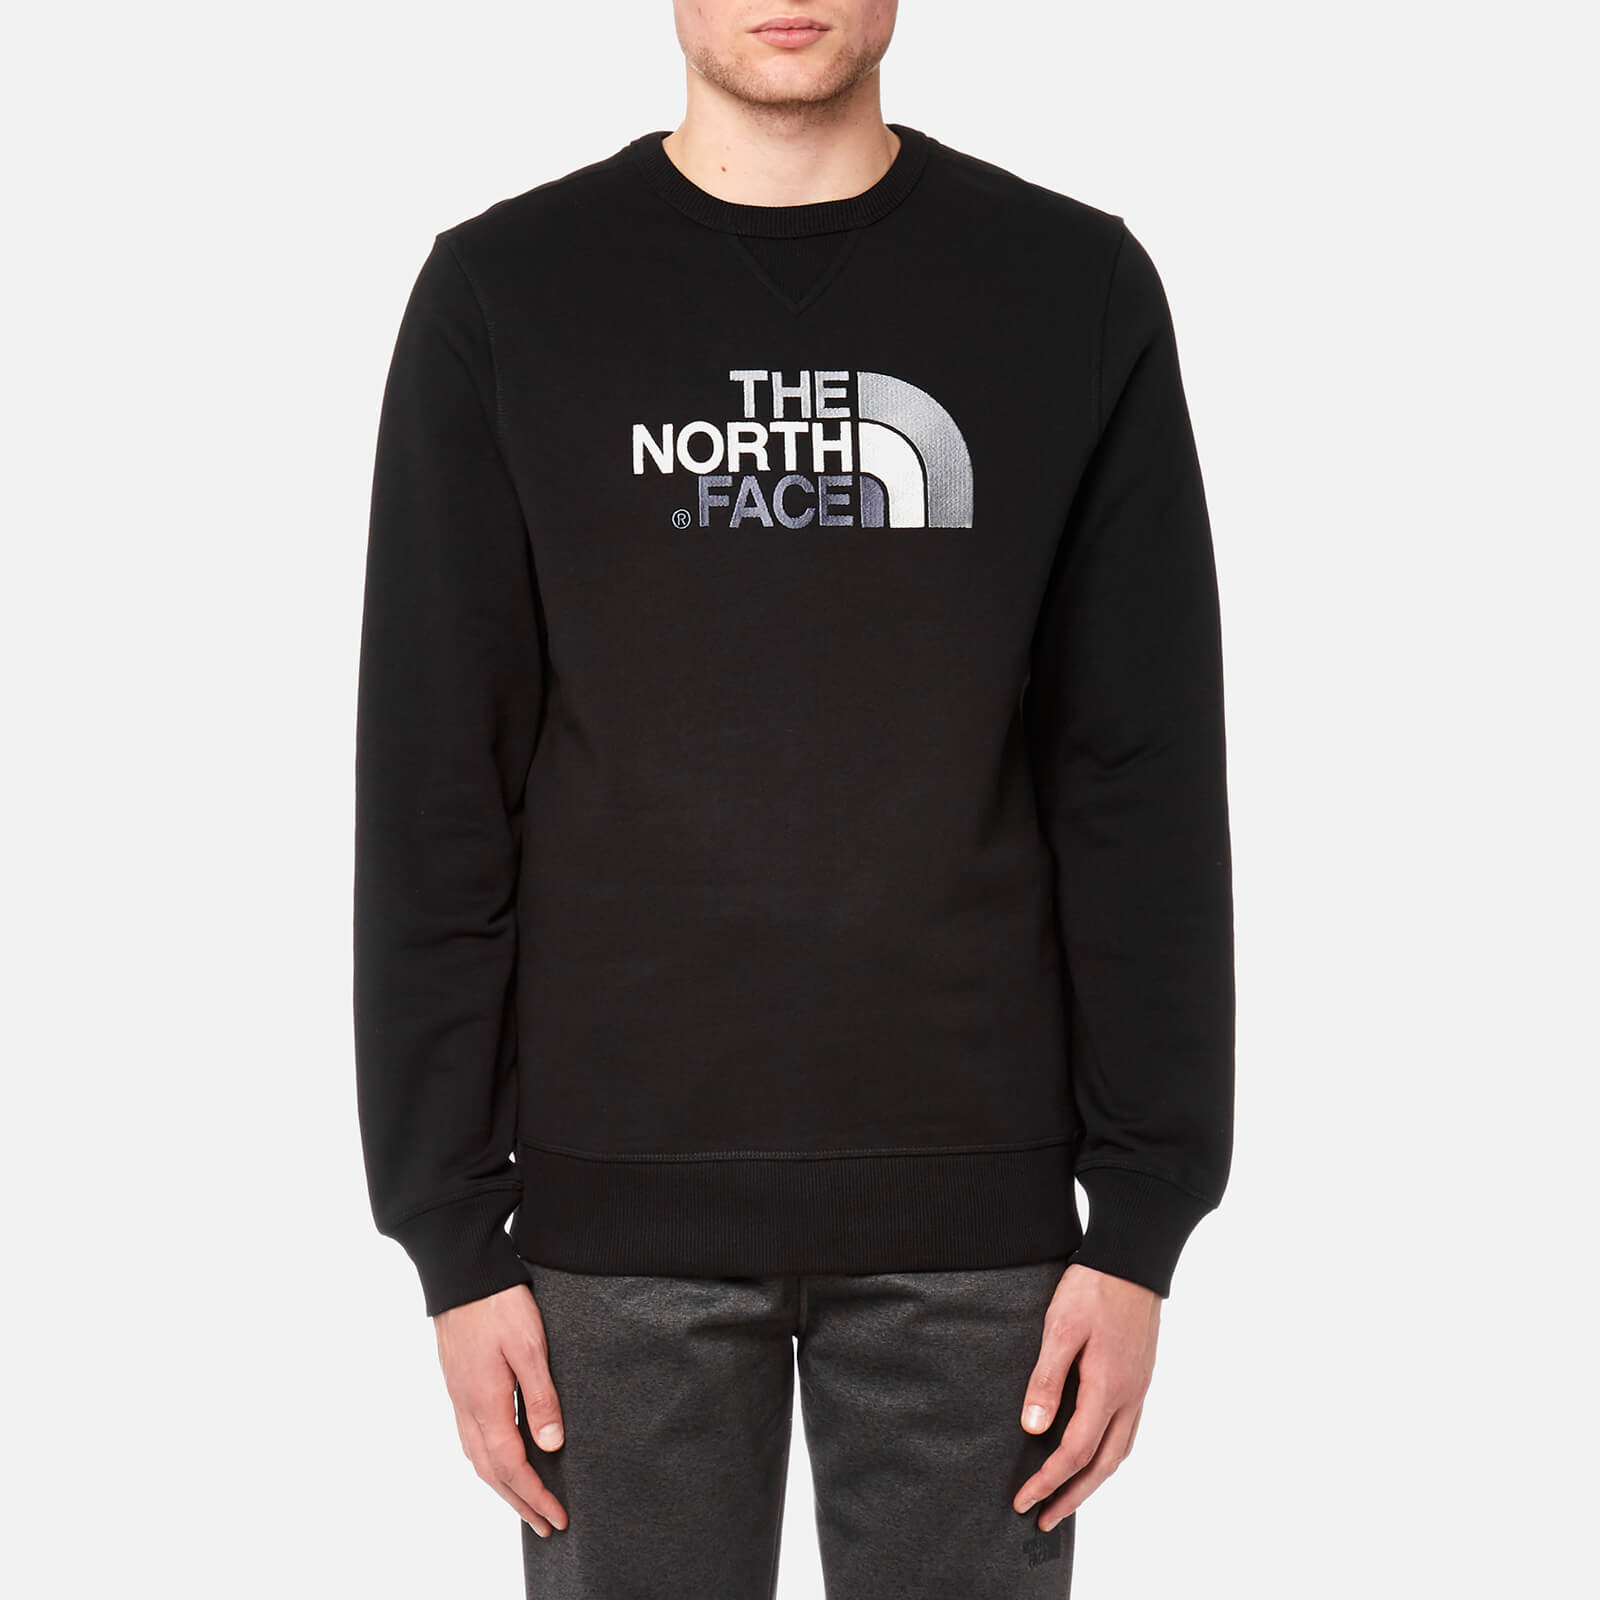 sale high quality delicate colors The North Face Men's Drew Peak Crew Neck Sweatshirt - TNF Black